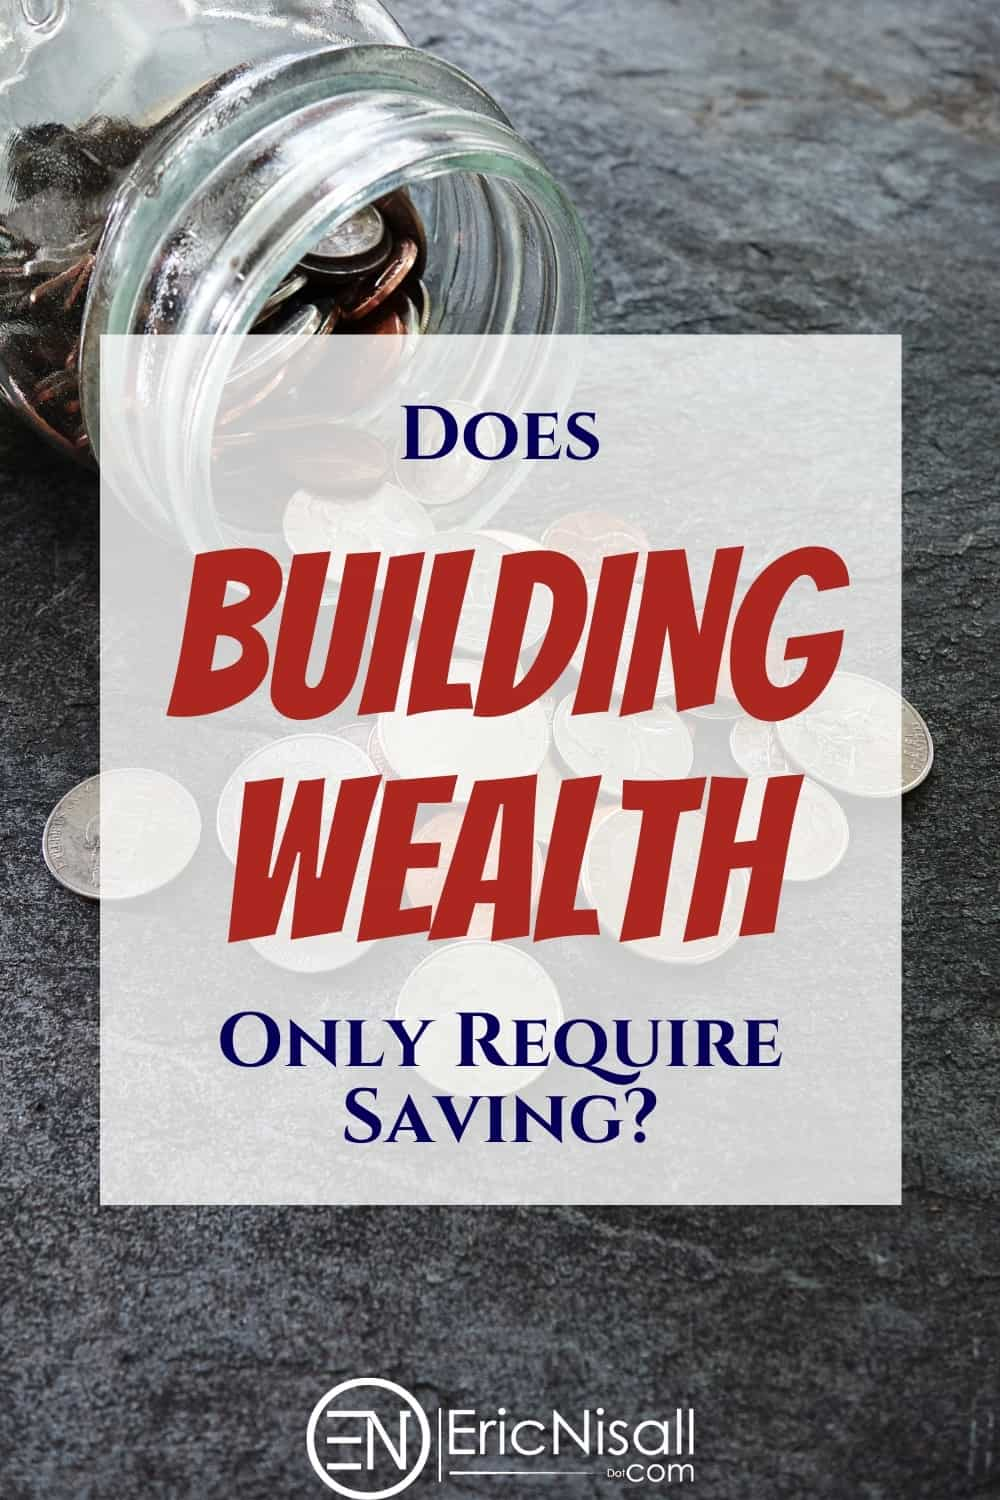 Building wealth is an admirable goal. Earning money will help achieve it, but saving money will too. So what should you focus on to build wealth? #saving money #savings #earningmoney #investing #wealth via @ericnisall